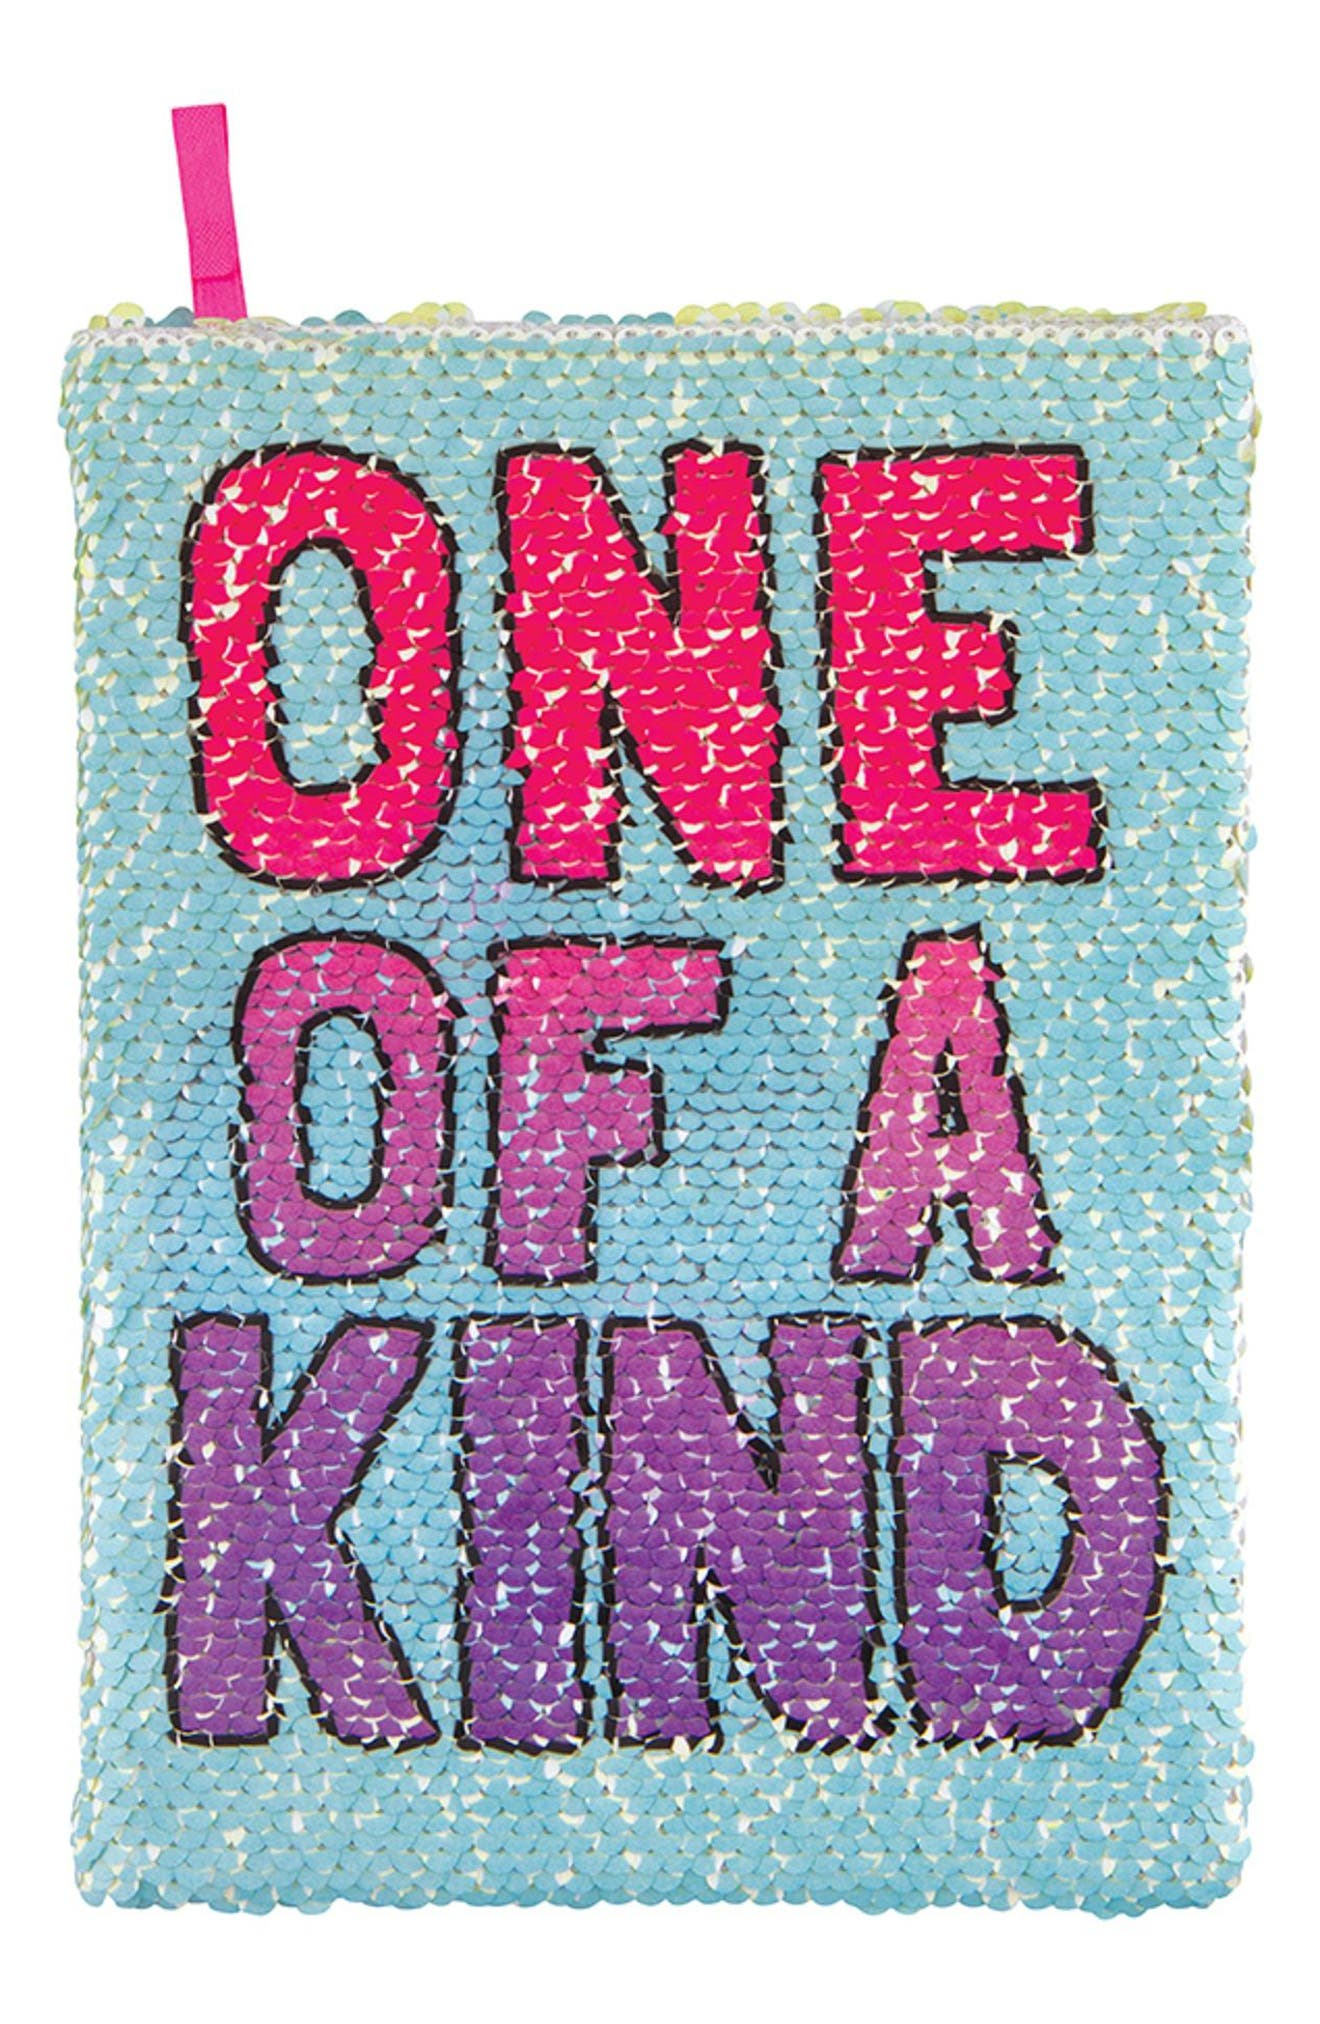 Narwhal One of a Kind Magic Sequin Reveal Journal,                             Main thumbnail 1, color,                             300